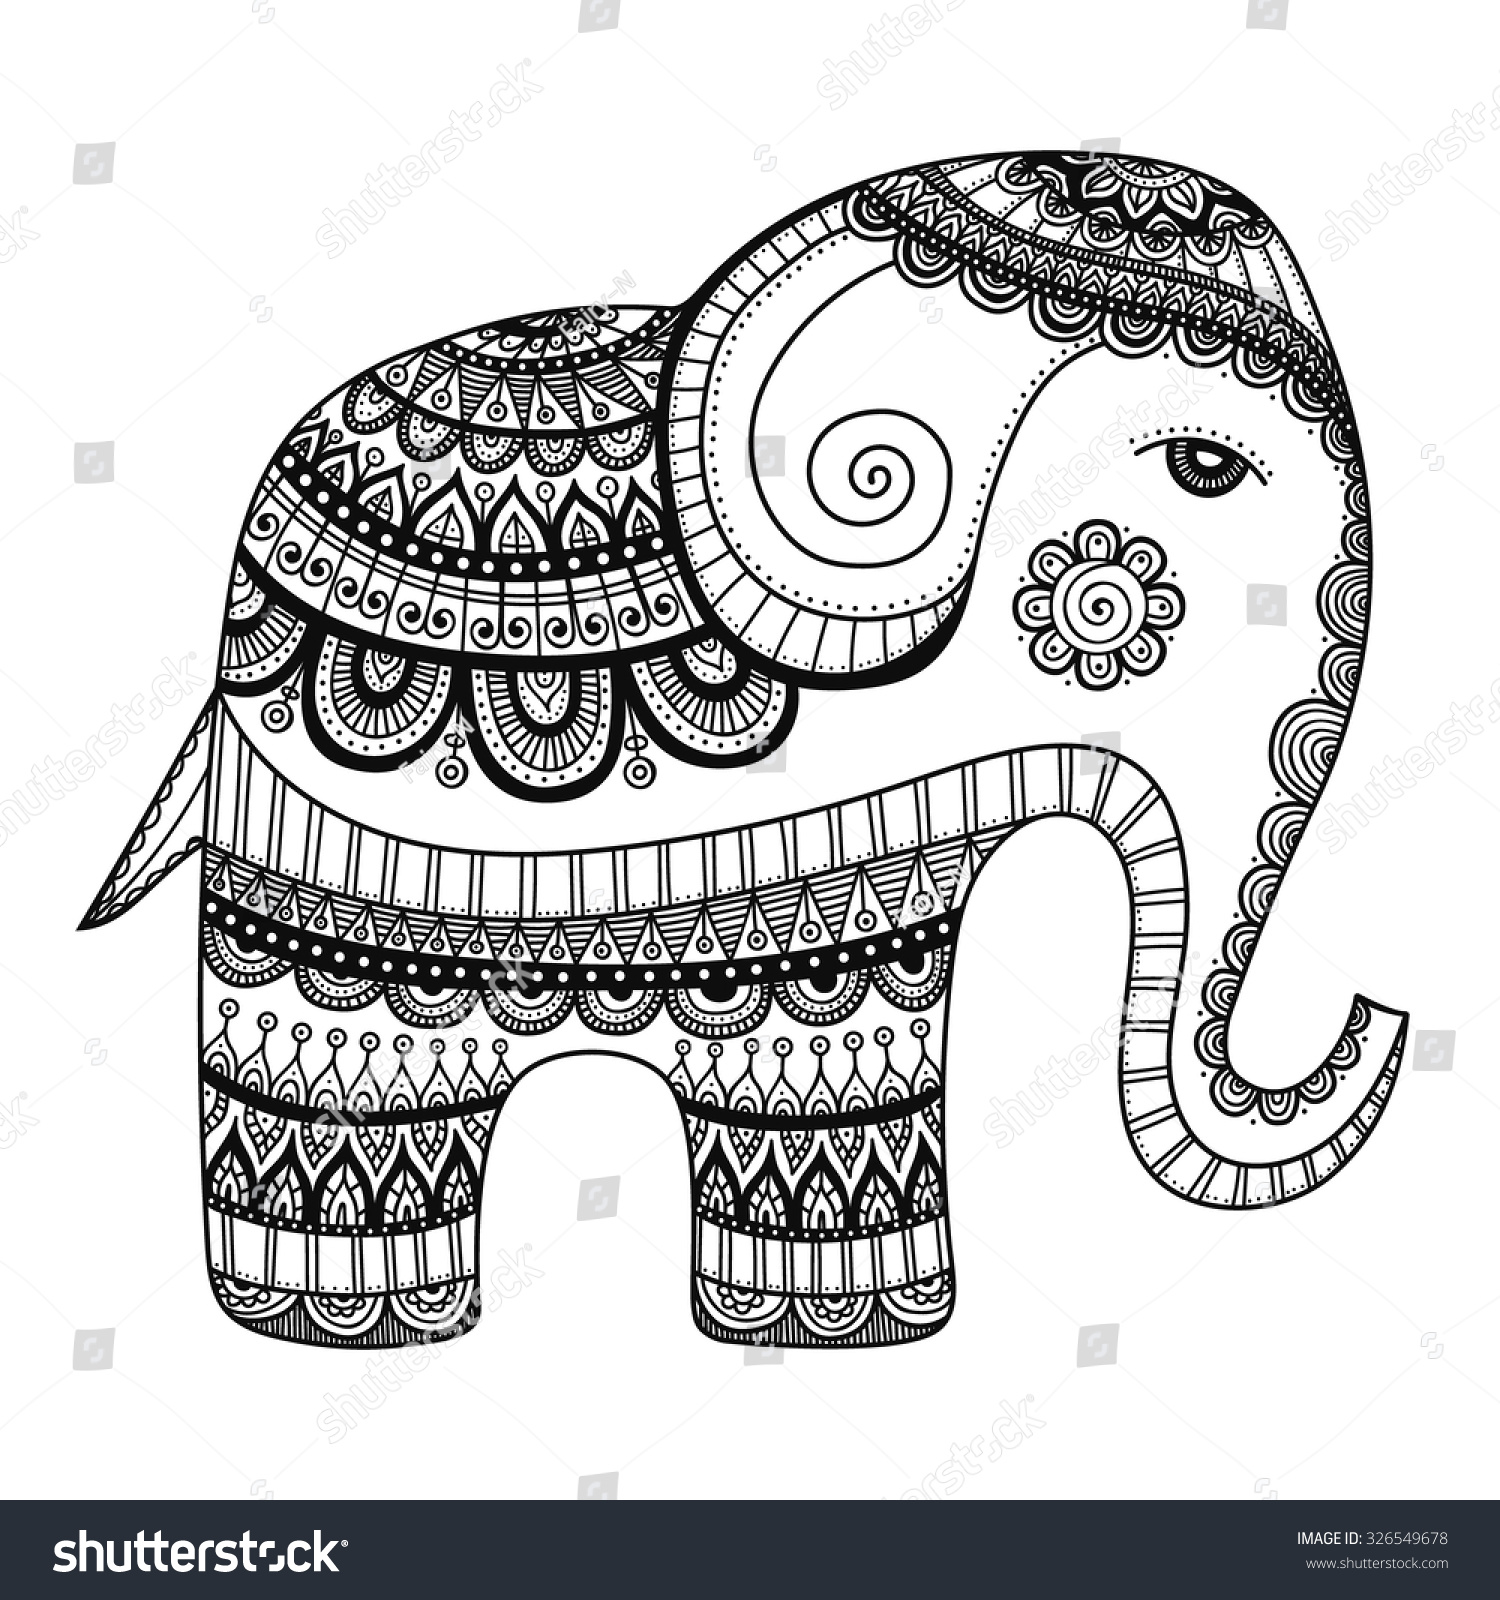 Indian Elephant Hand Drawn Doodle Bishop With Abstract Tribal Ornament Vector Ethnic